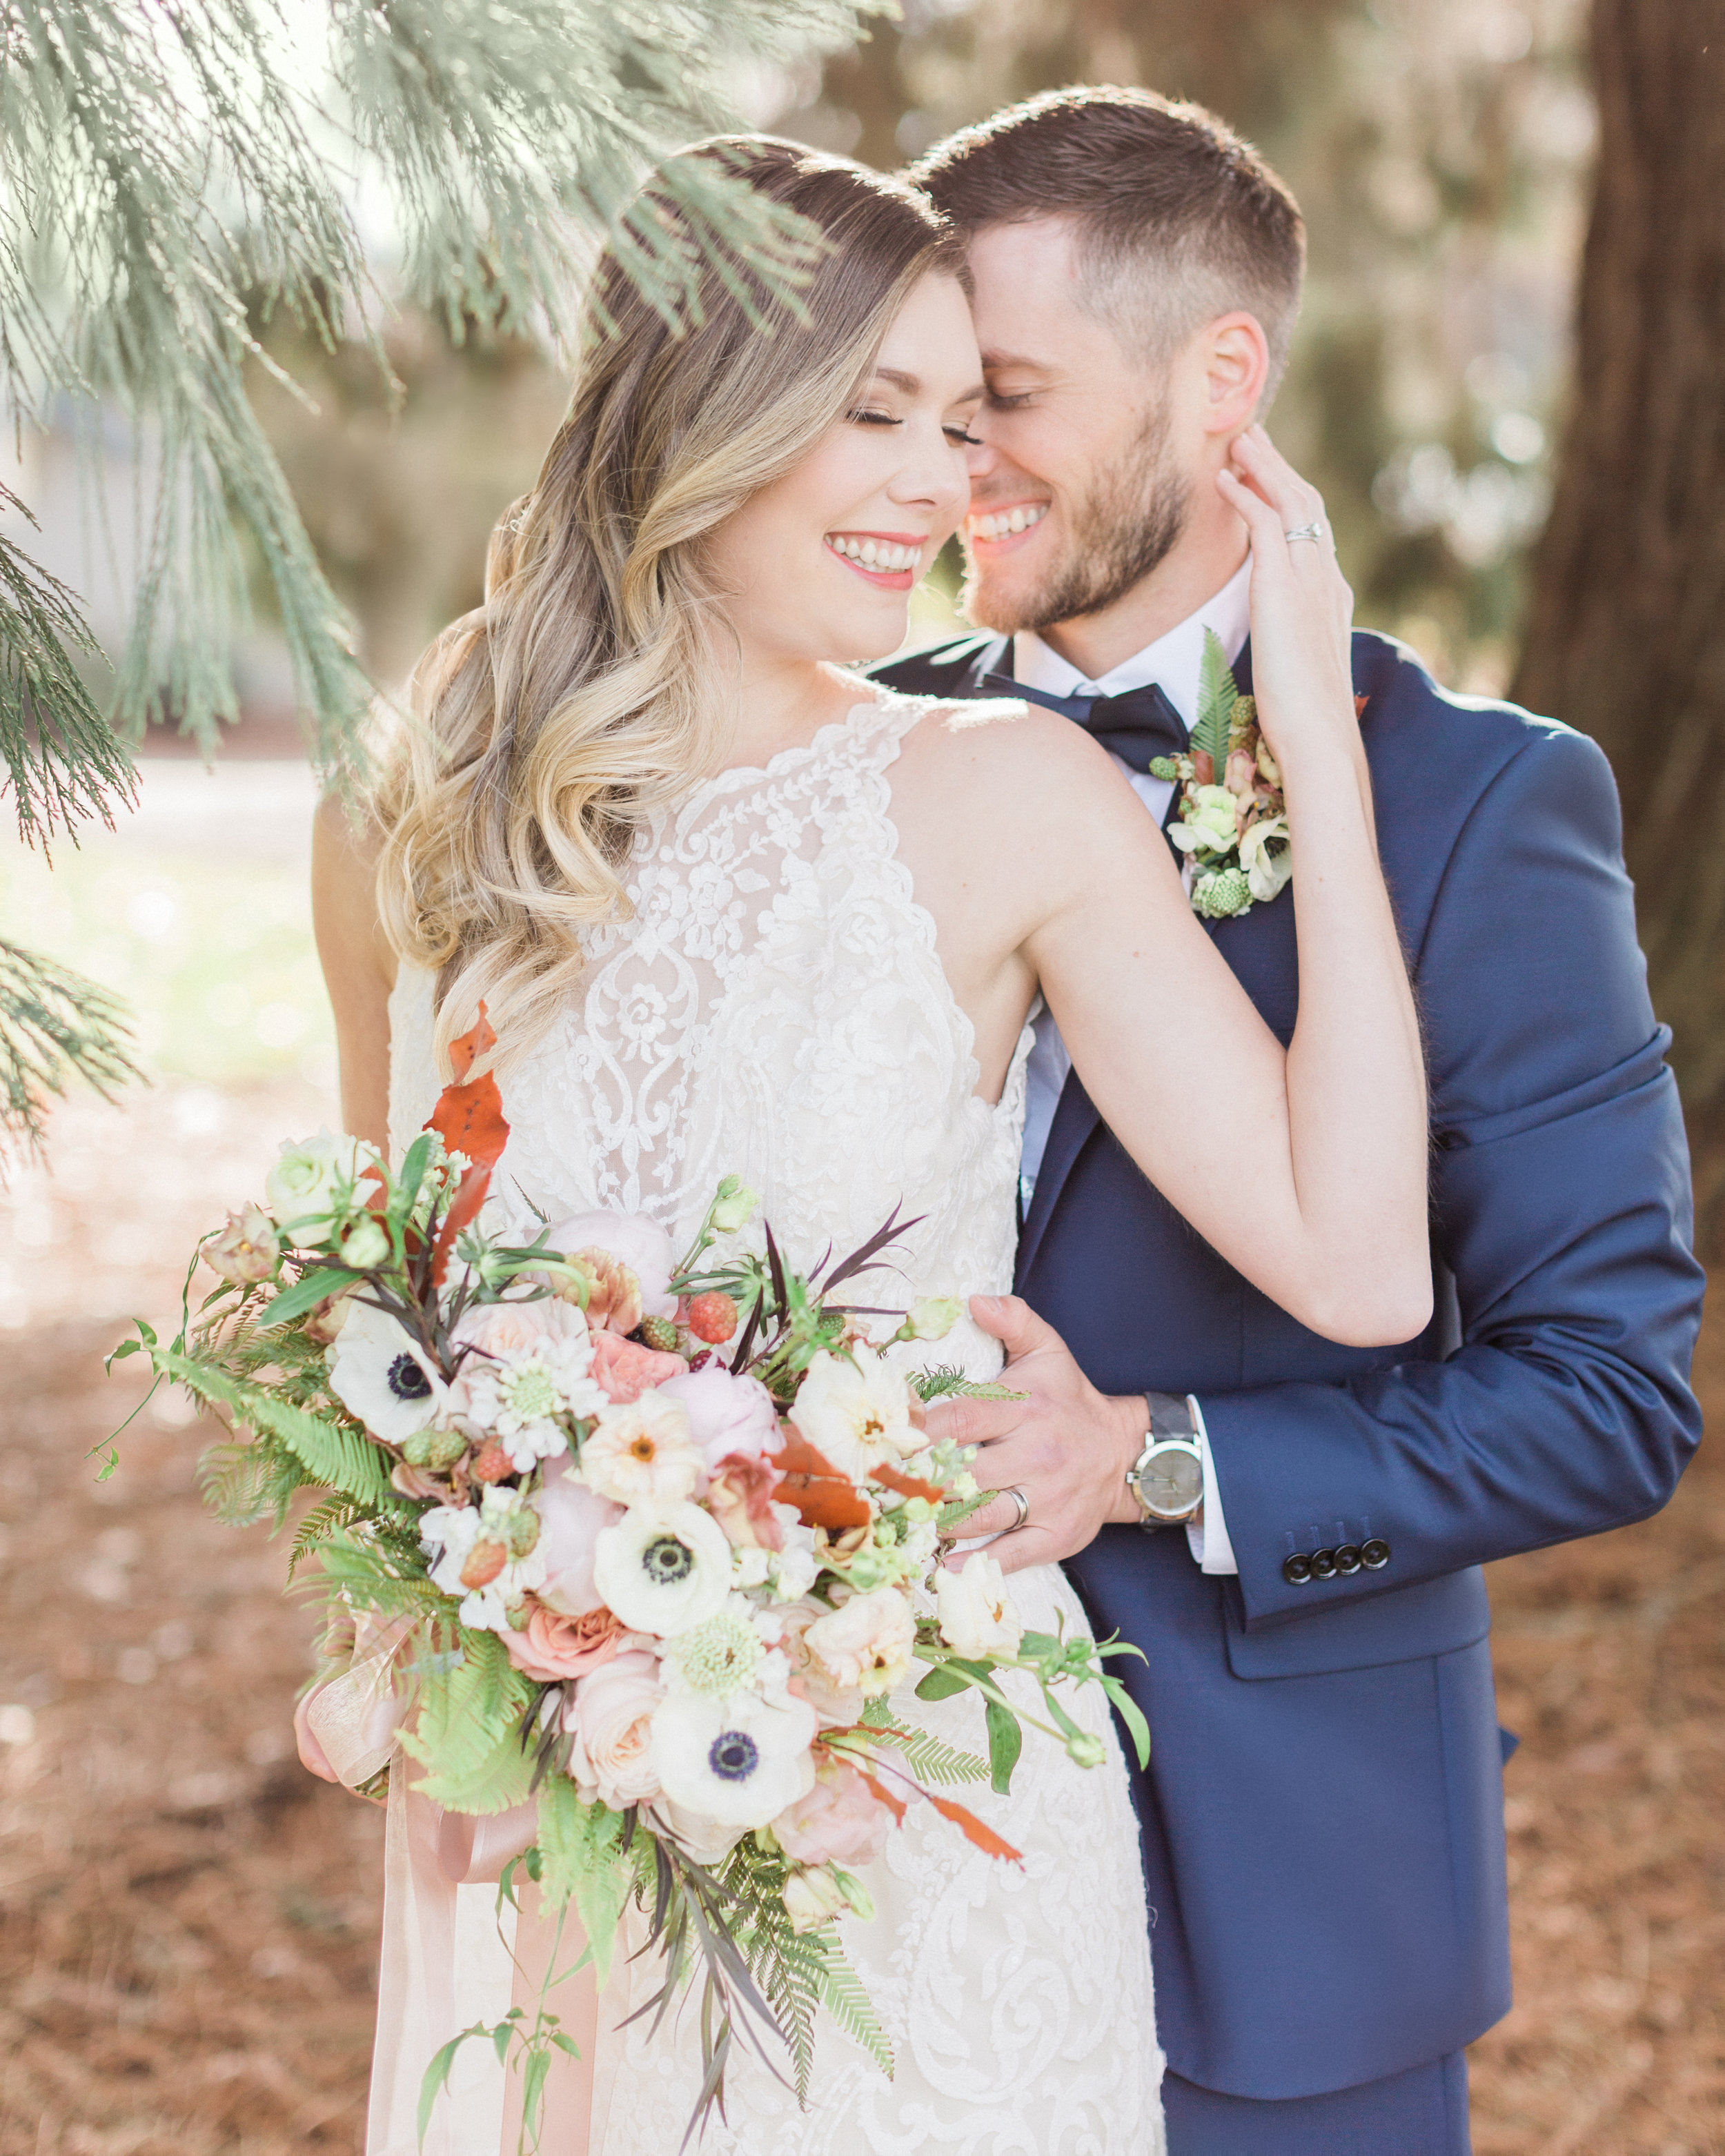 Heather Mills Photography at Shadow Hills Country Club (Dec 2018)-2.JPG